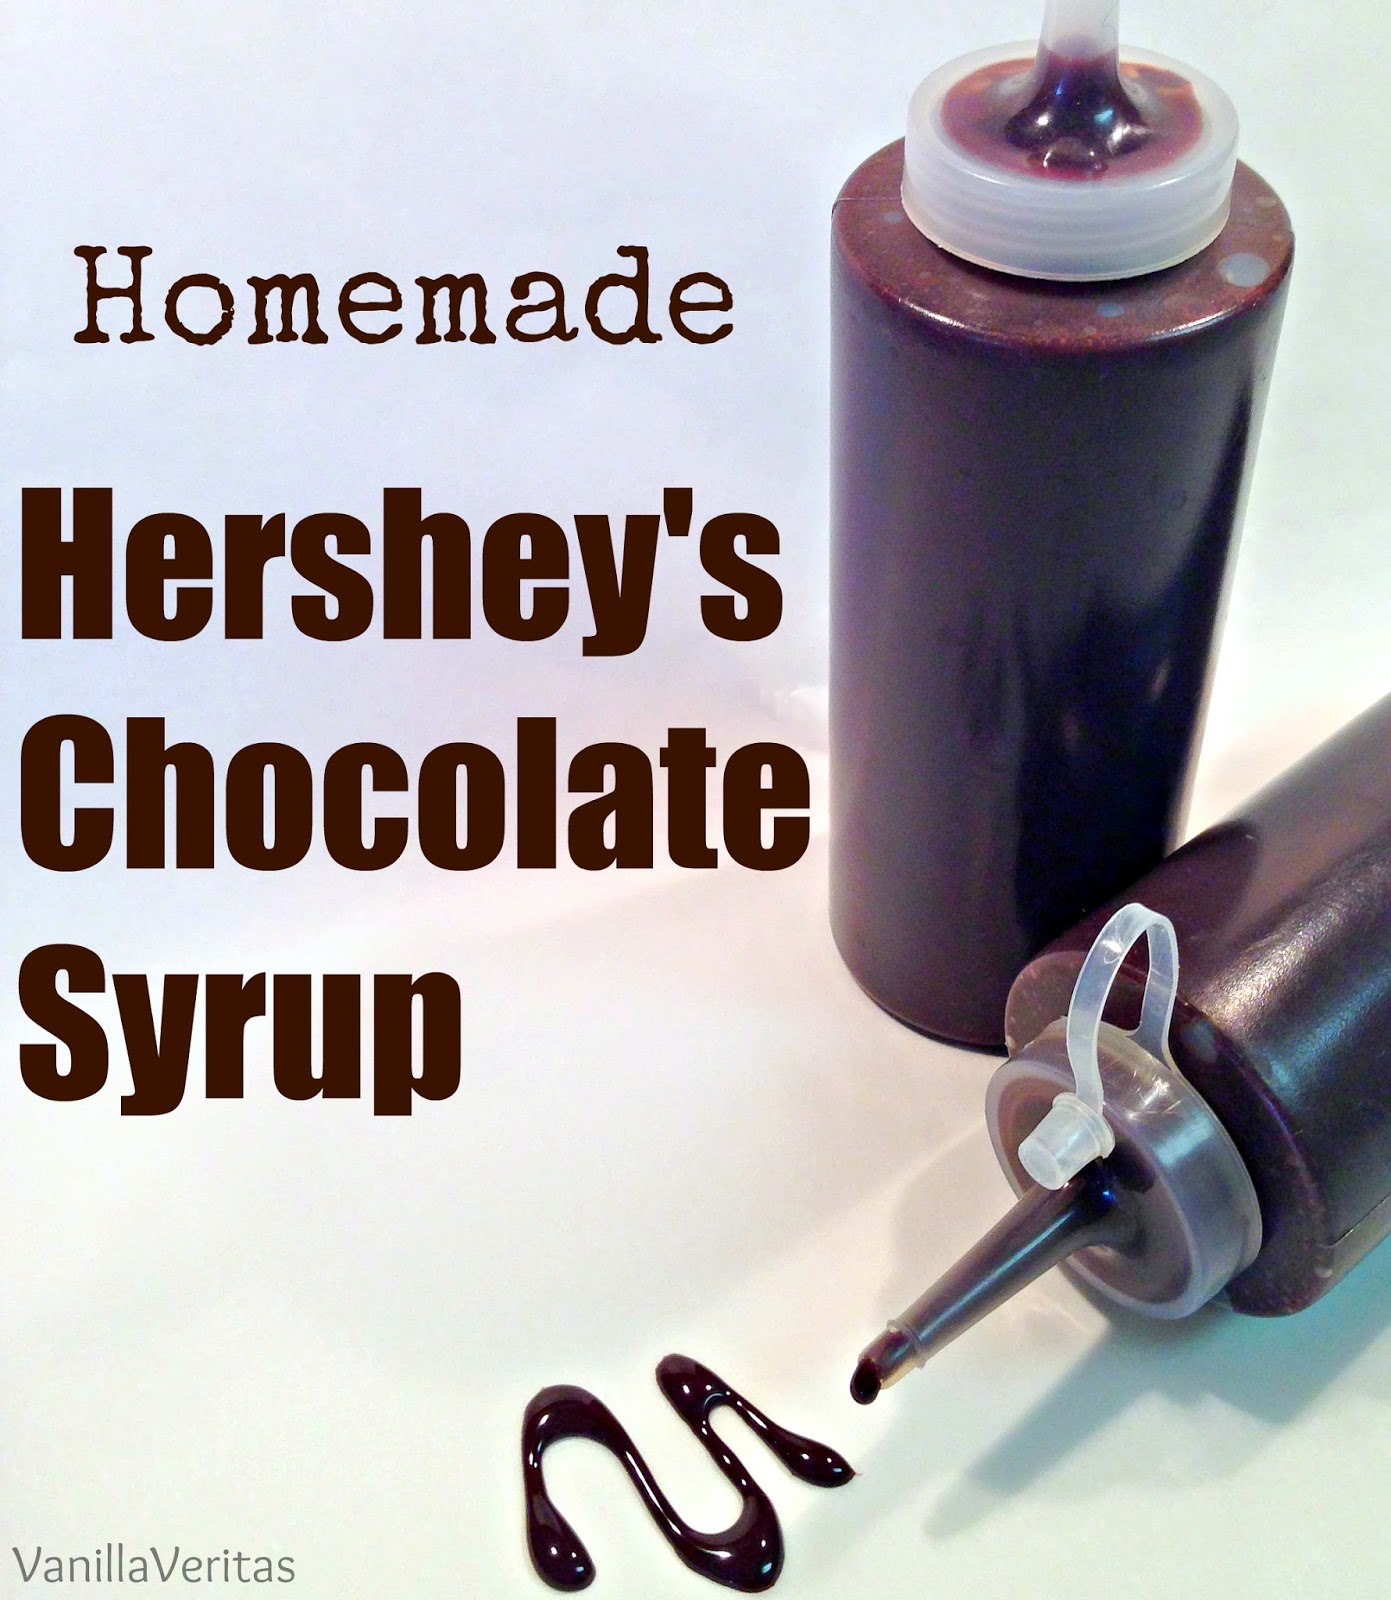 hershey's syrup | copycat | homemade | dupe | recipe | chocolate syrup | chocolate sauce | hersheys syrup | hershey | chocolate | dessert | topping | ice cream | hot chocolate mix | hot chocolate | mocha mix